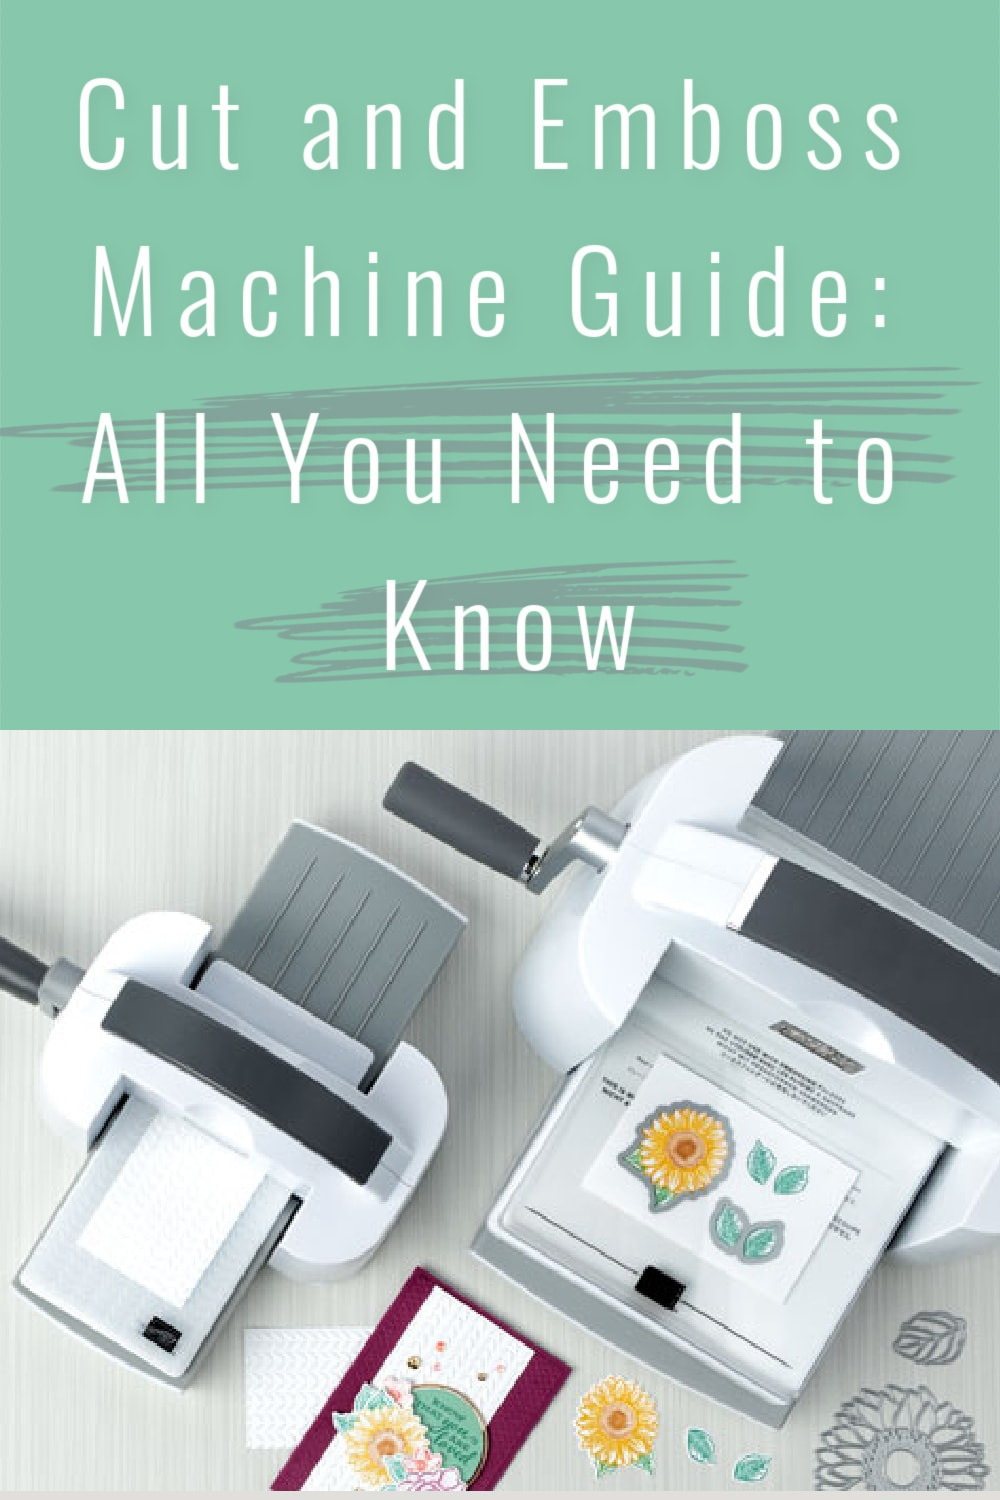 cut-and-emboss-machine-guide